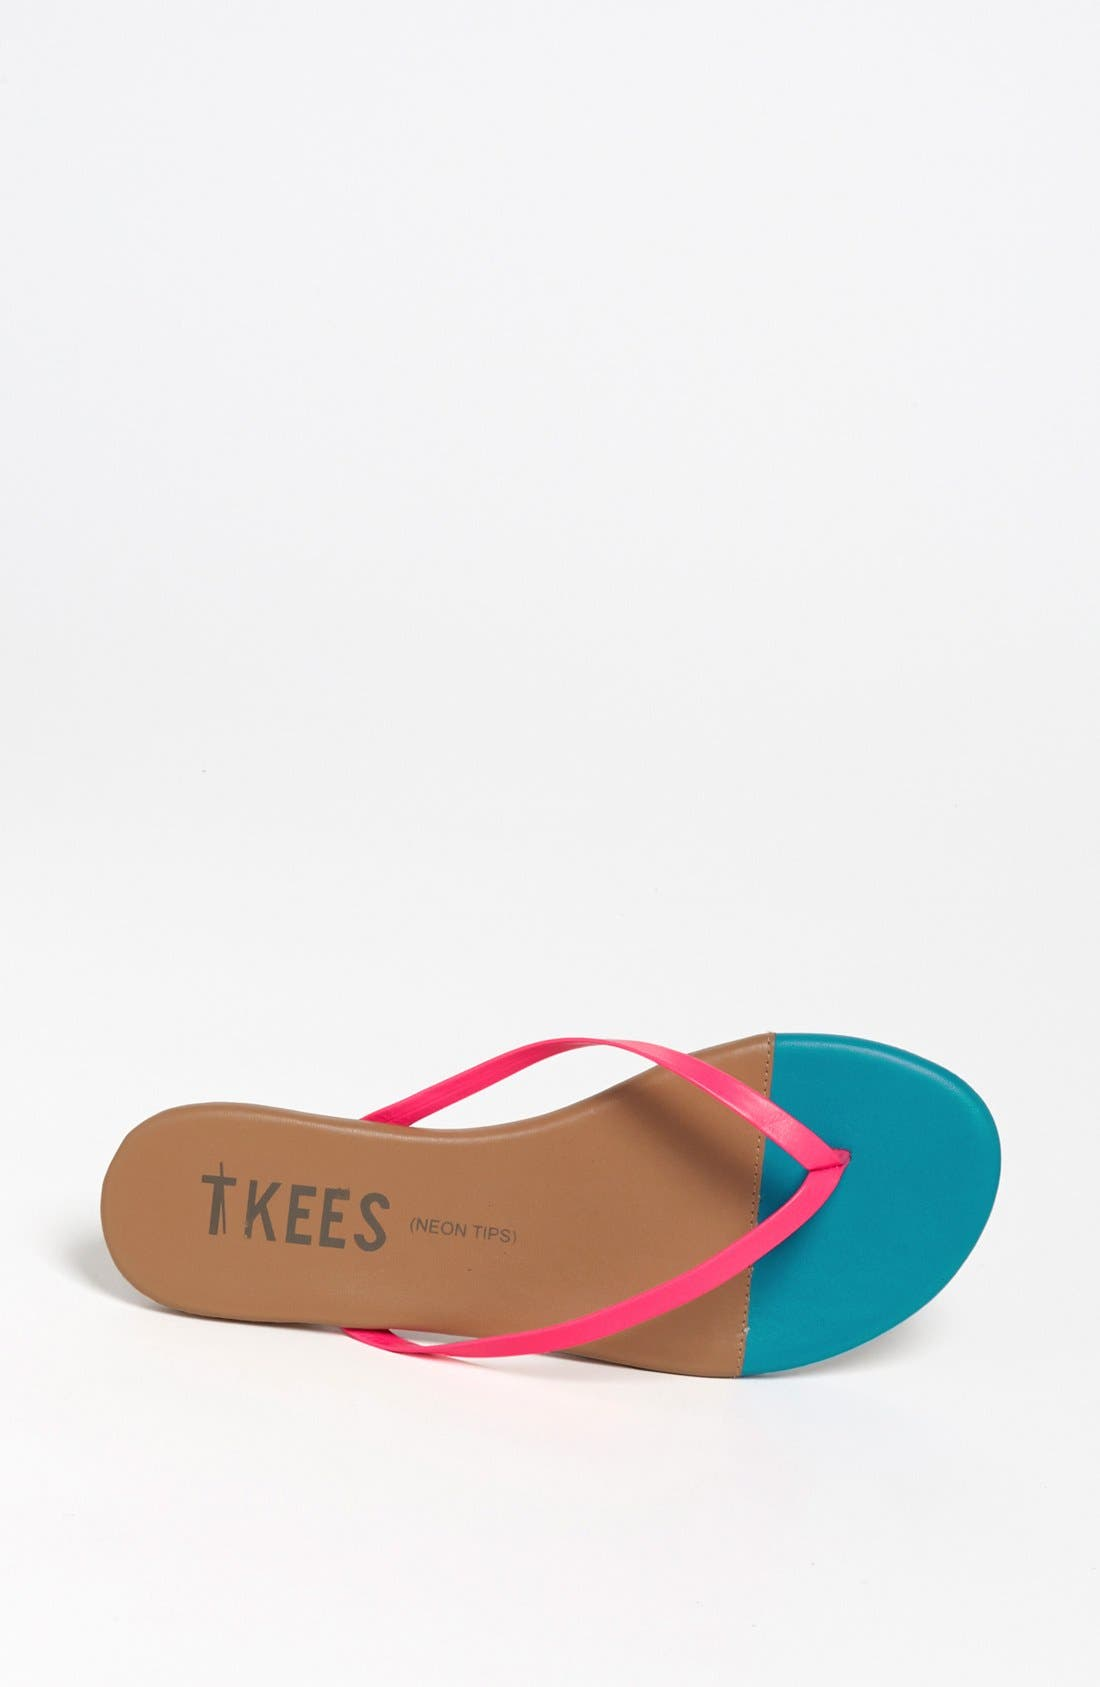 Alternate Image 3  - TKEES 'Neon Tips' Flip Flop